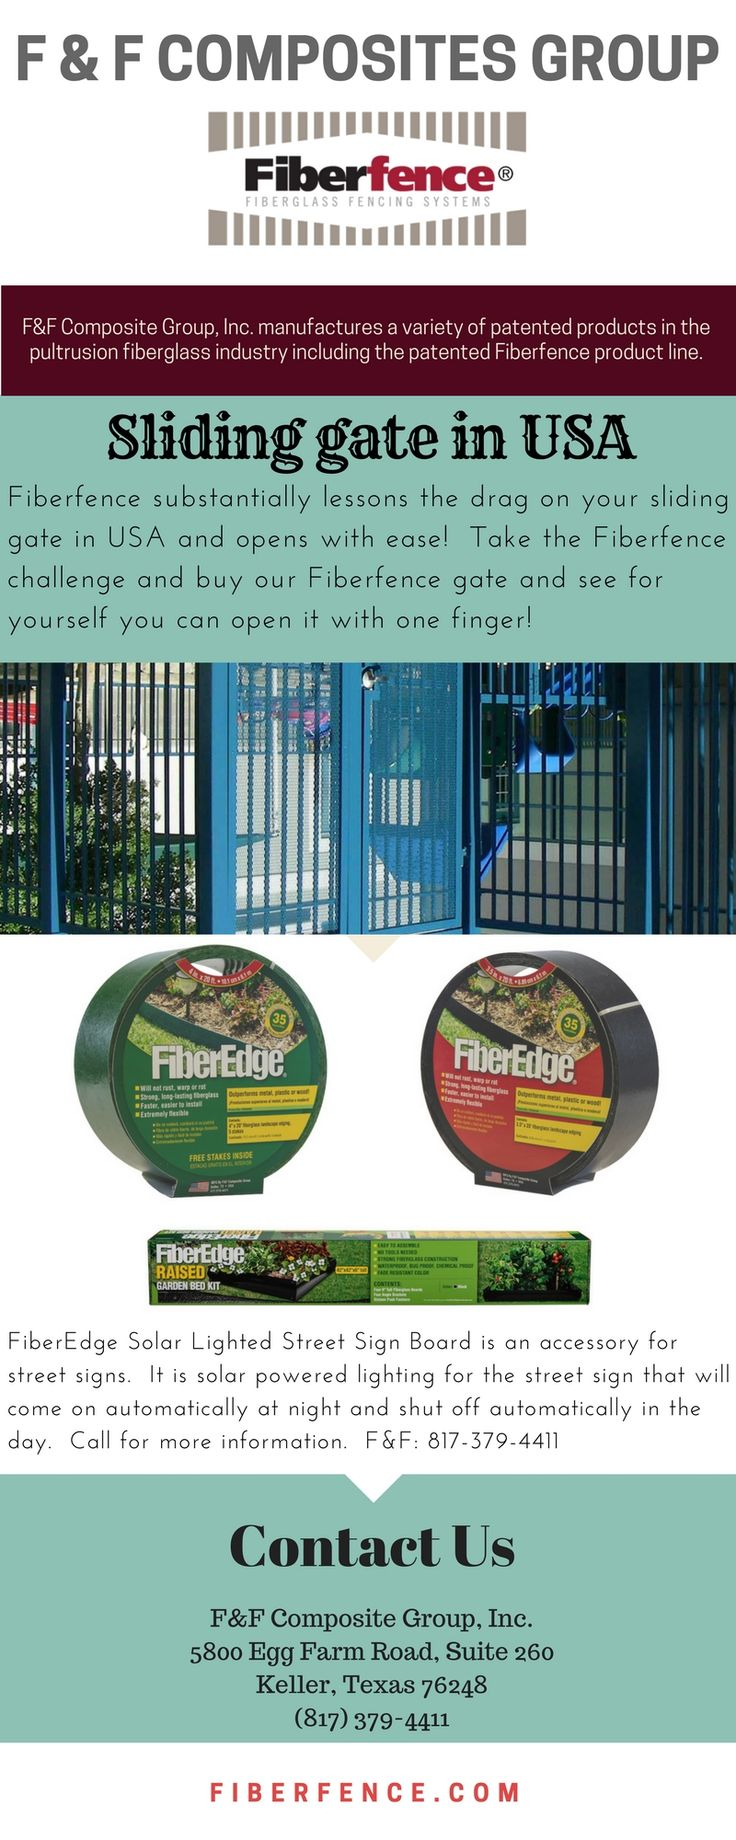 Do you get tired of trying to leave and finding that your automatic gate operator is on the blink again?  Did you know that Fiberfence could extend the life of your sliding gate opener? It can, only with Fiberfence fiberglass fencing systems that are half the weight of steel or wood.  Fiberfence substantially lessons the drag on your sliding gate in USA and opens with ease!